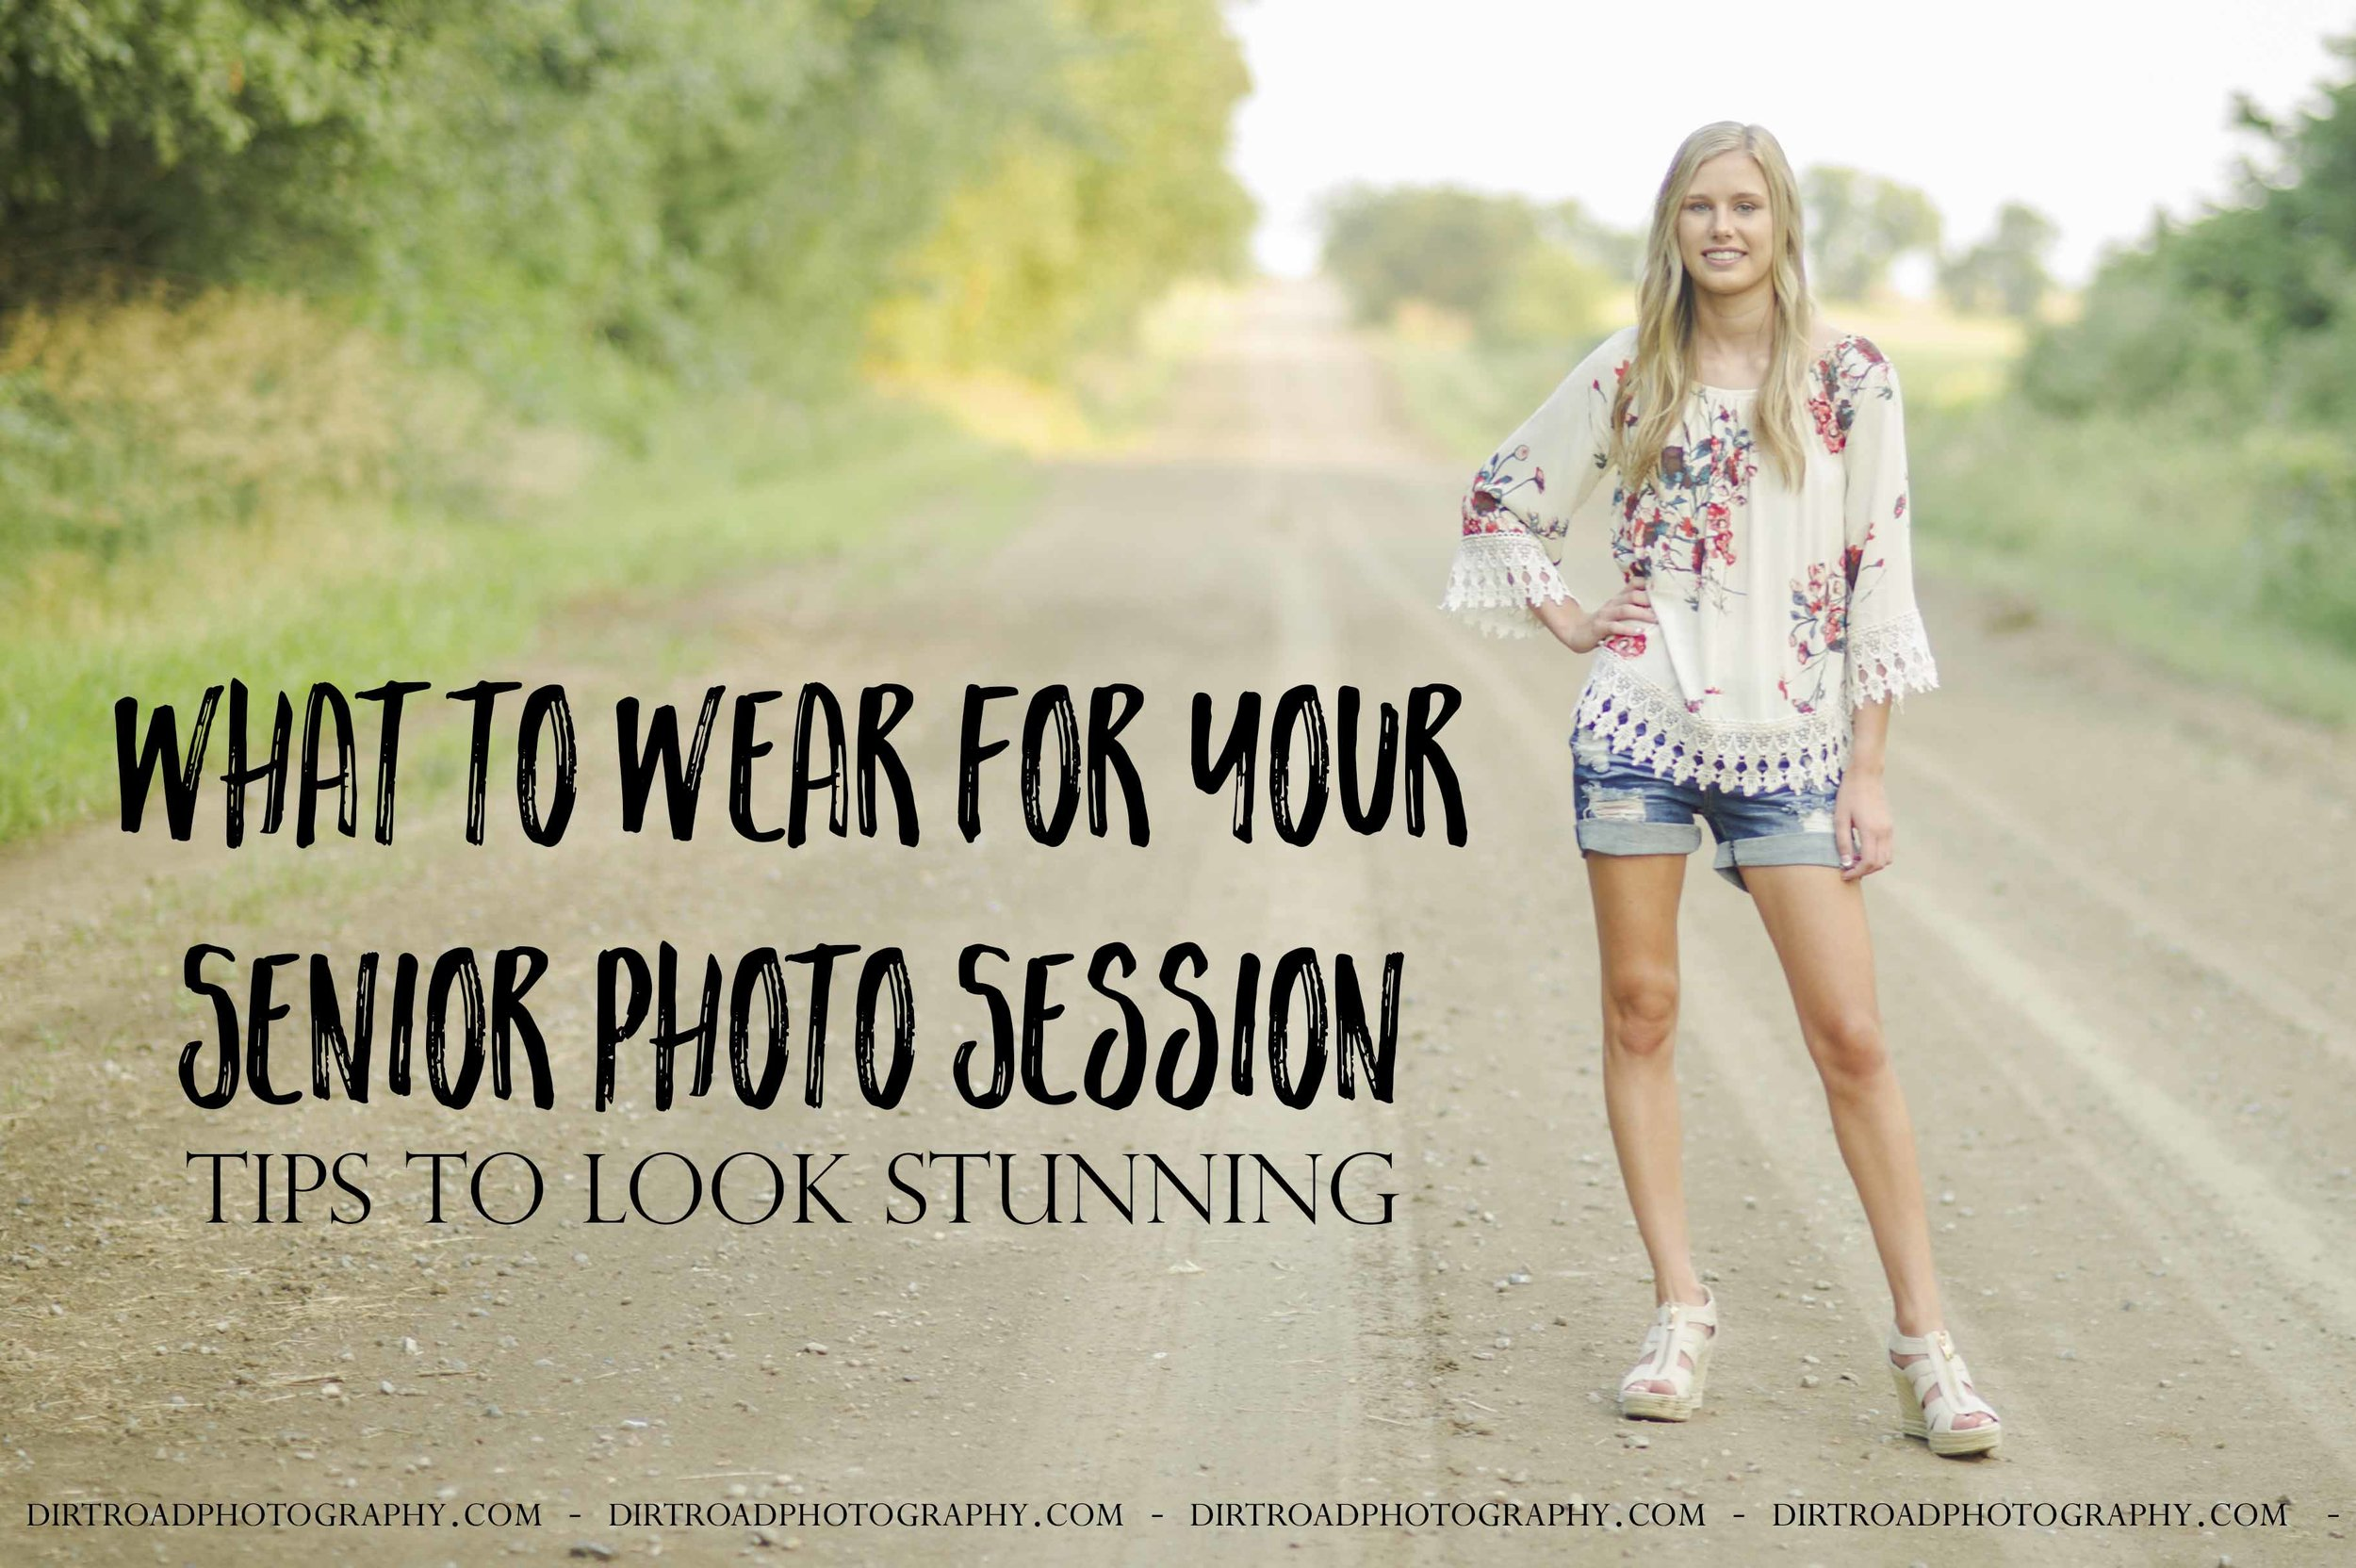 What To Wear For Your Senior Photo Session